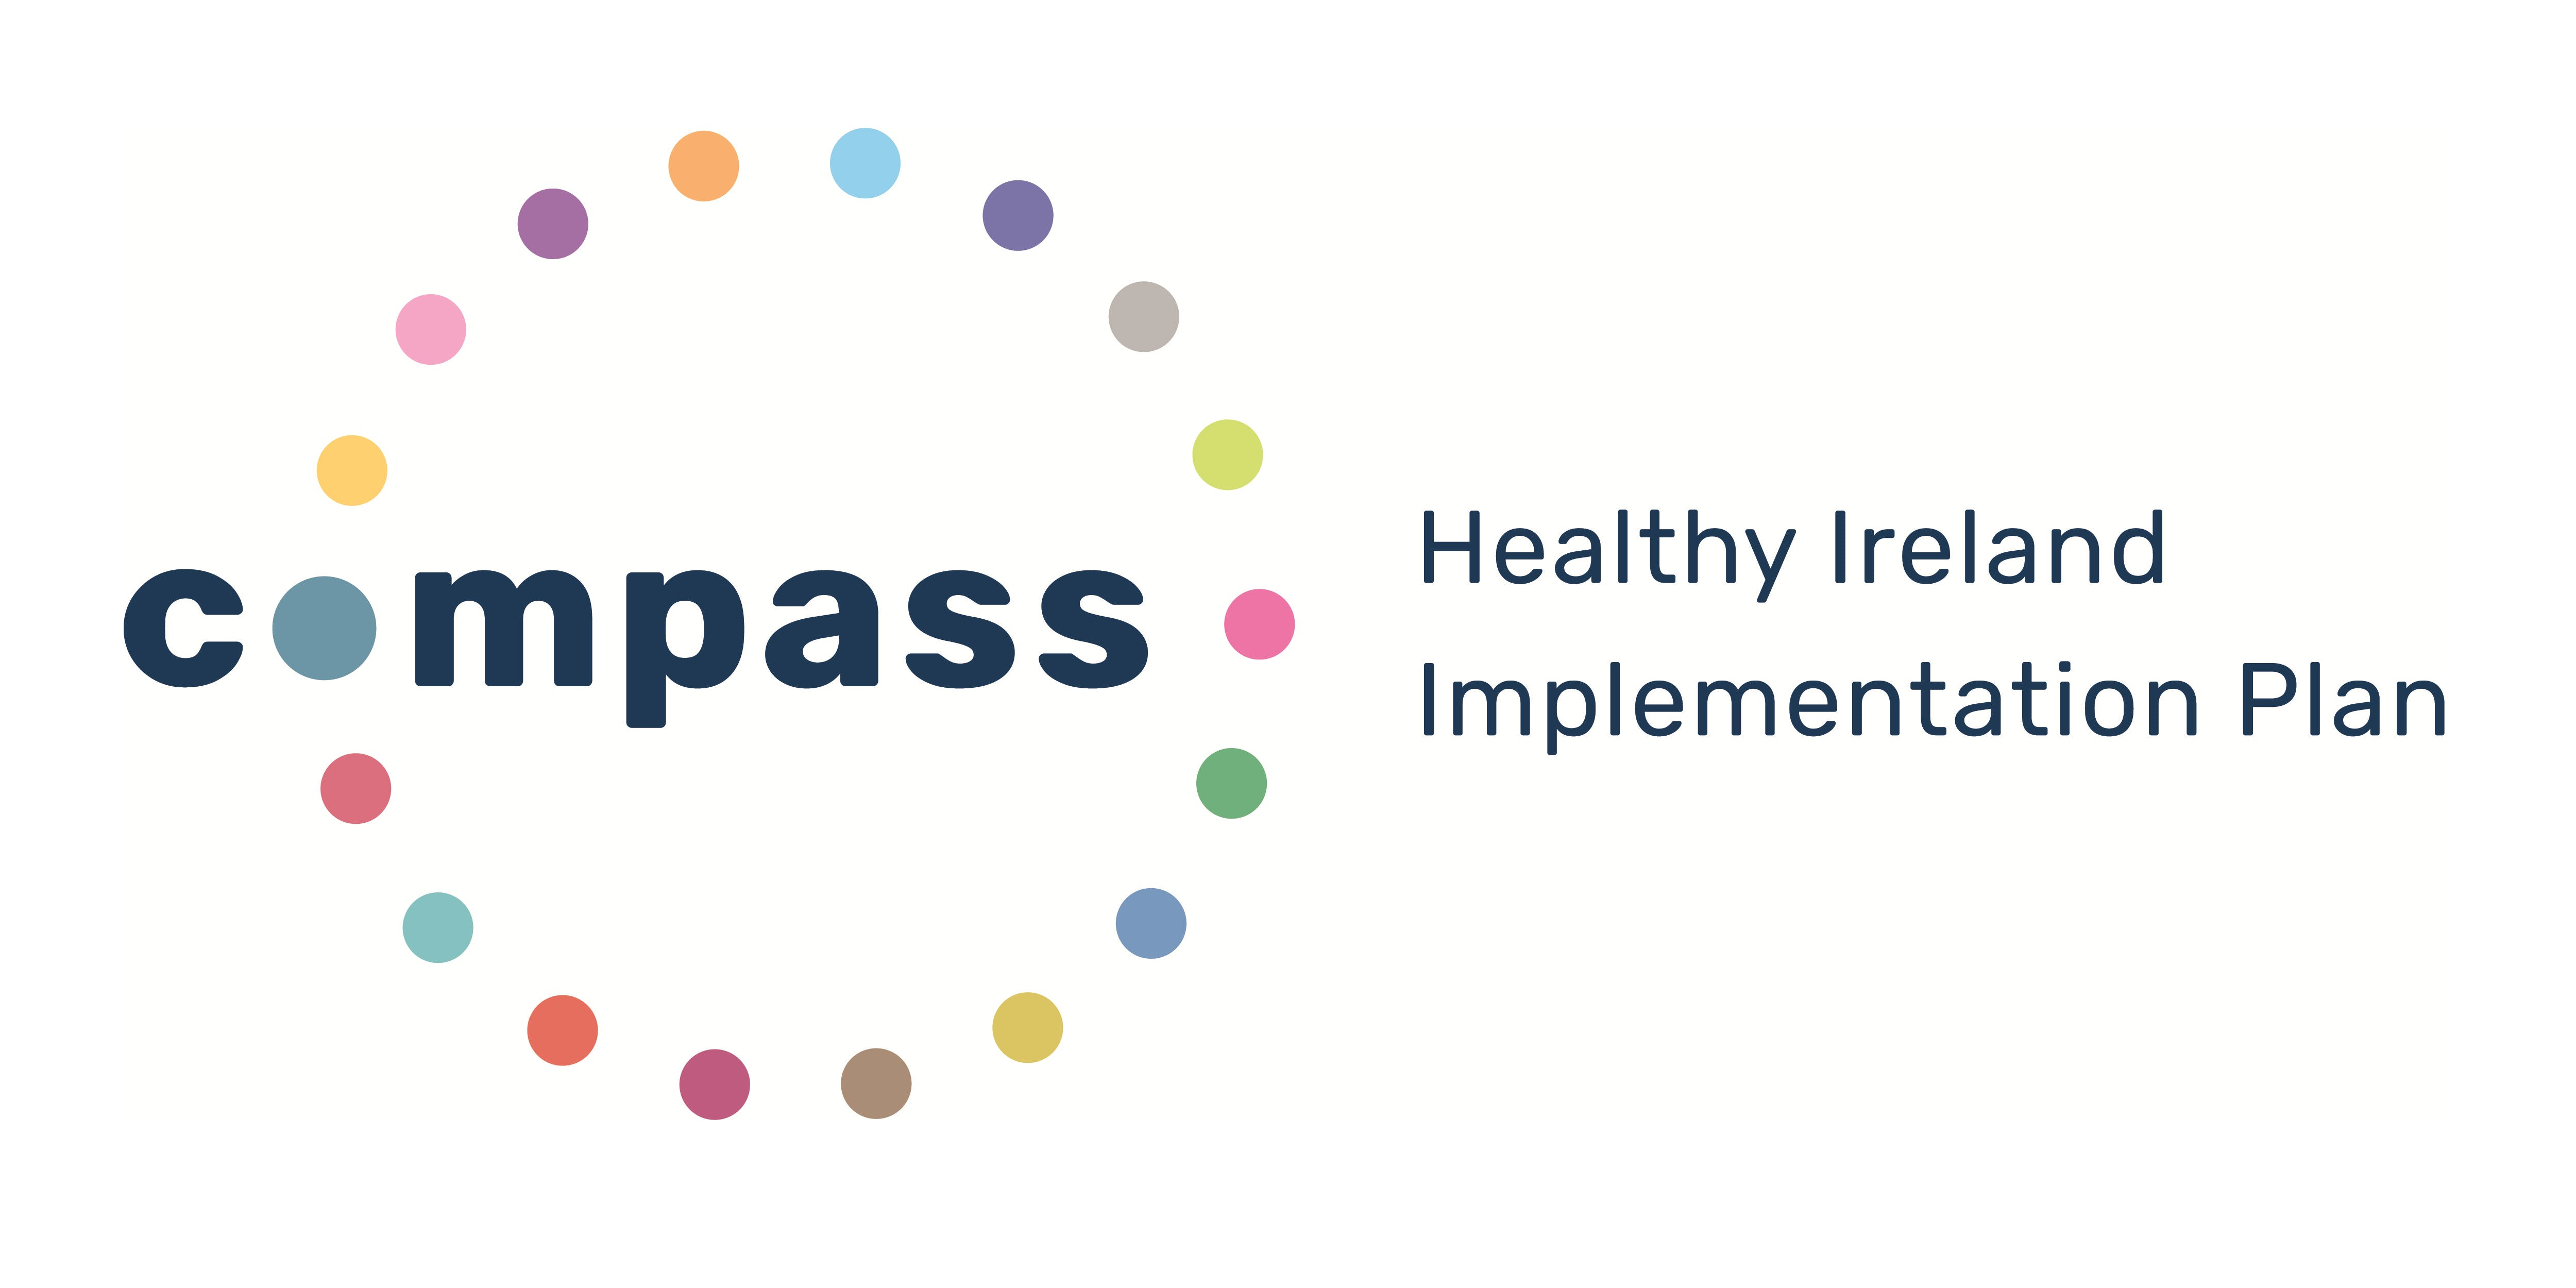 Cork Kerry Community Healthcare COMPASS Healthy Ireland Workshop South & Southeast Cork City (Networks 11 & 14)